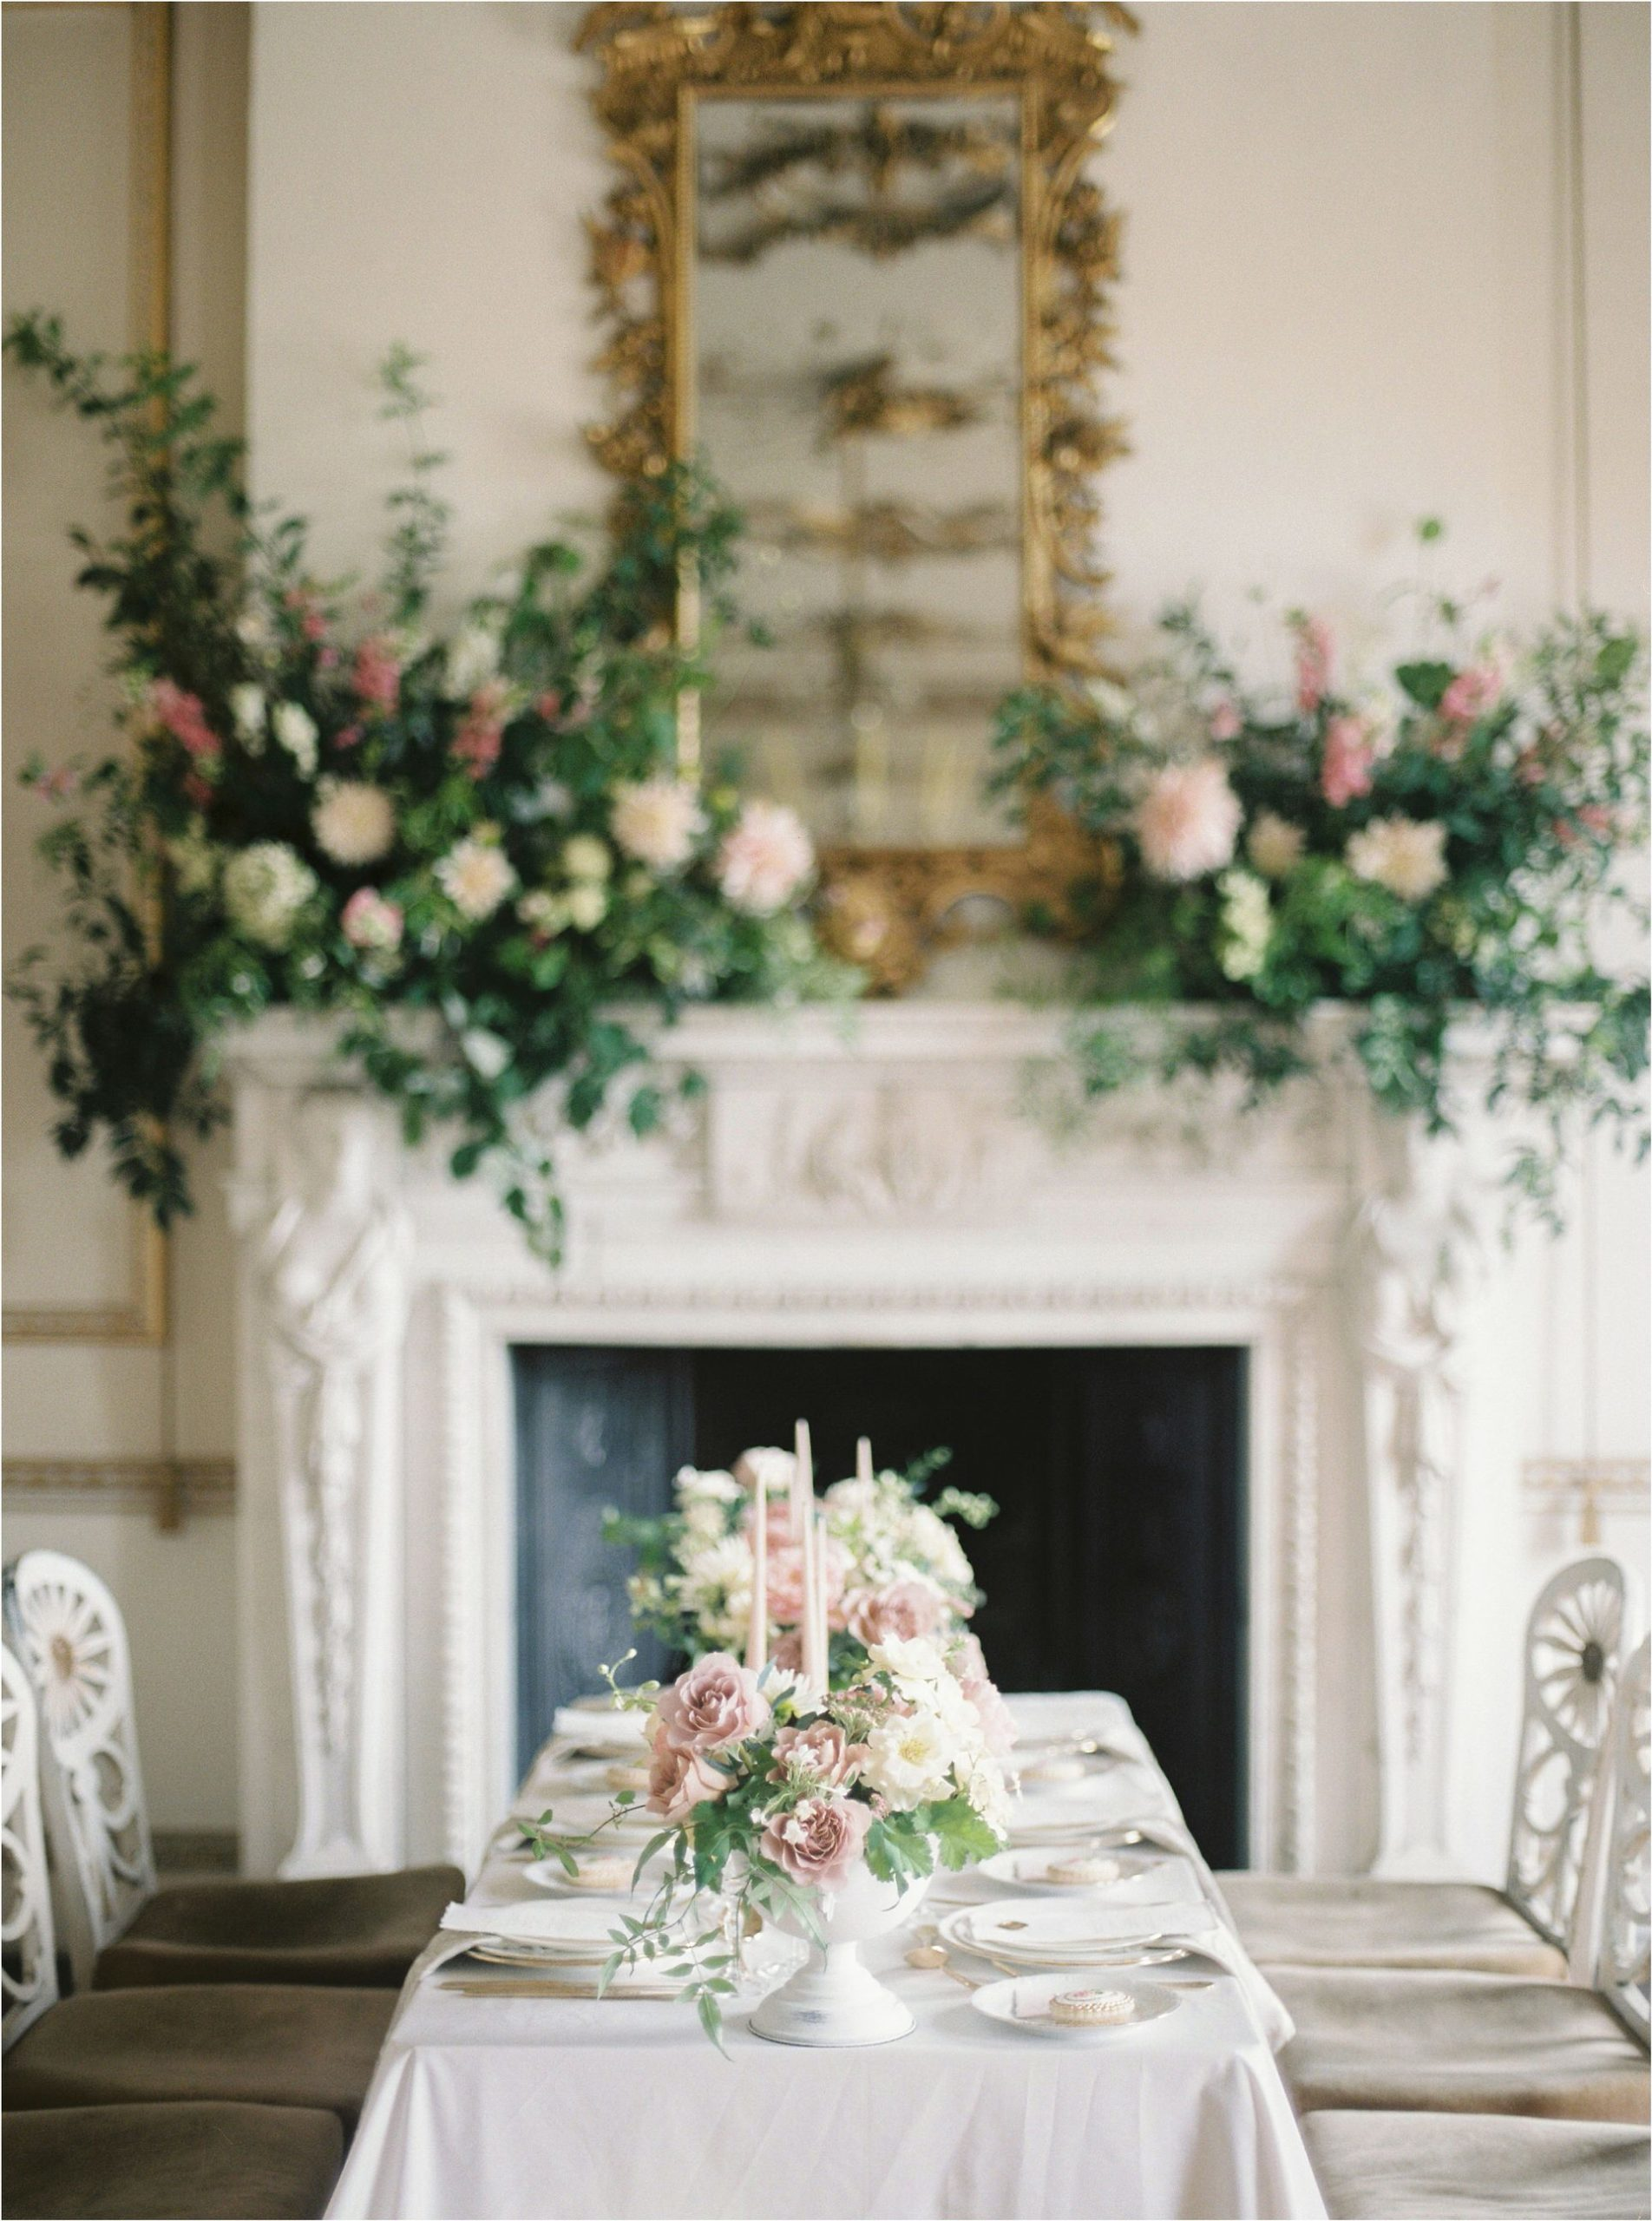 table set with for wedding breakfast at Came House wedding